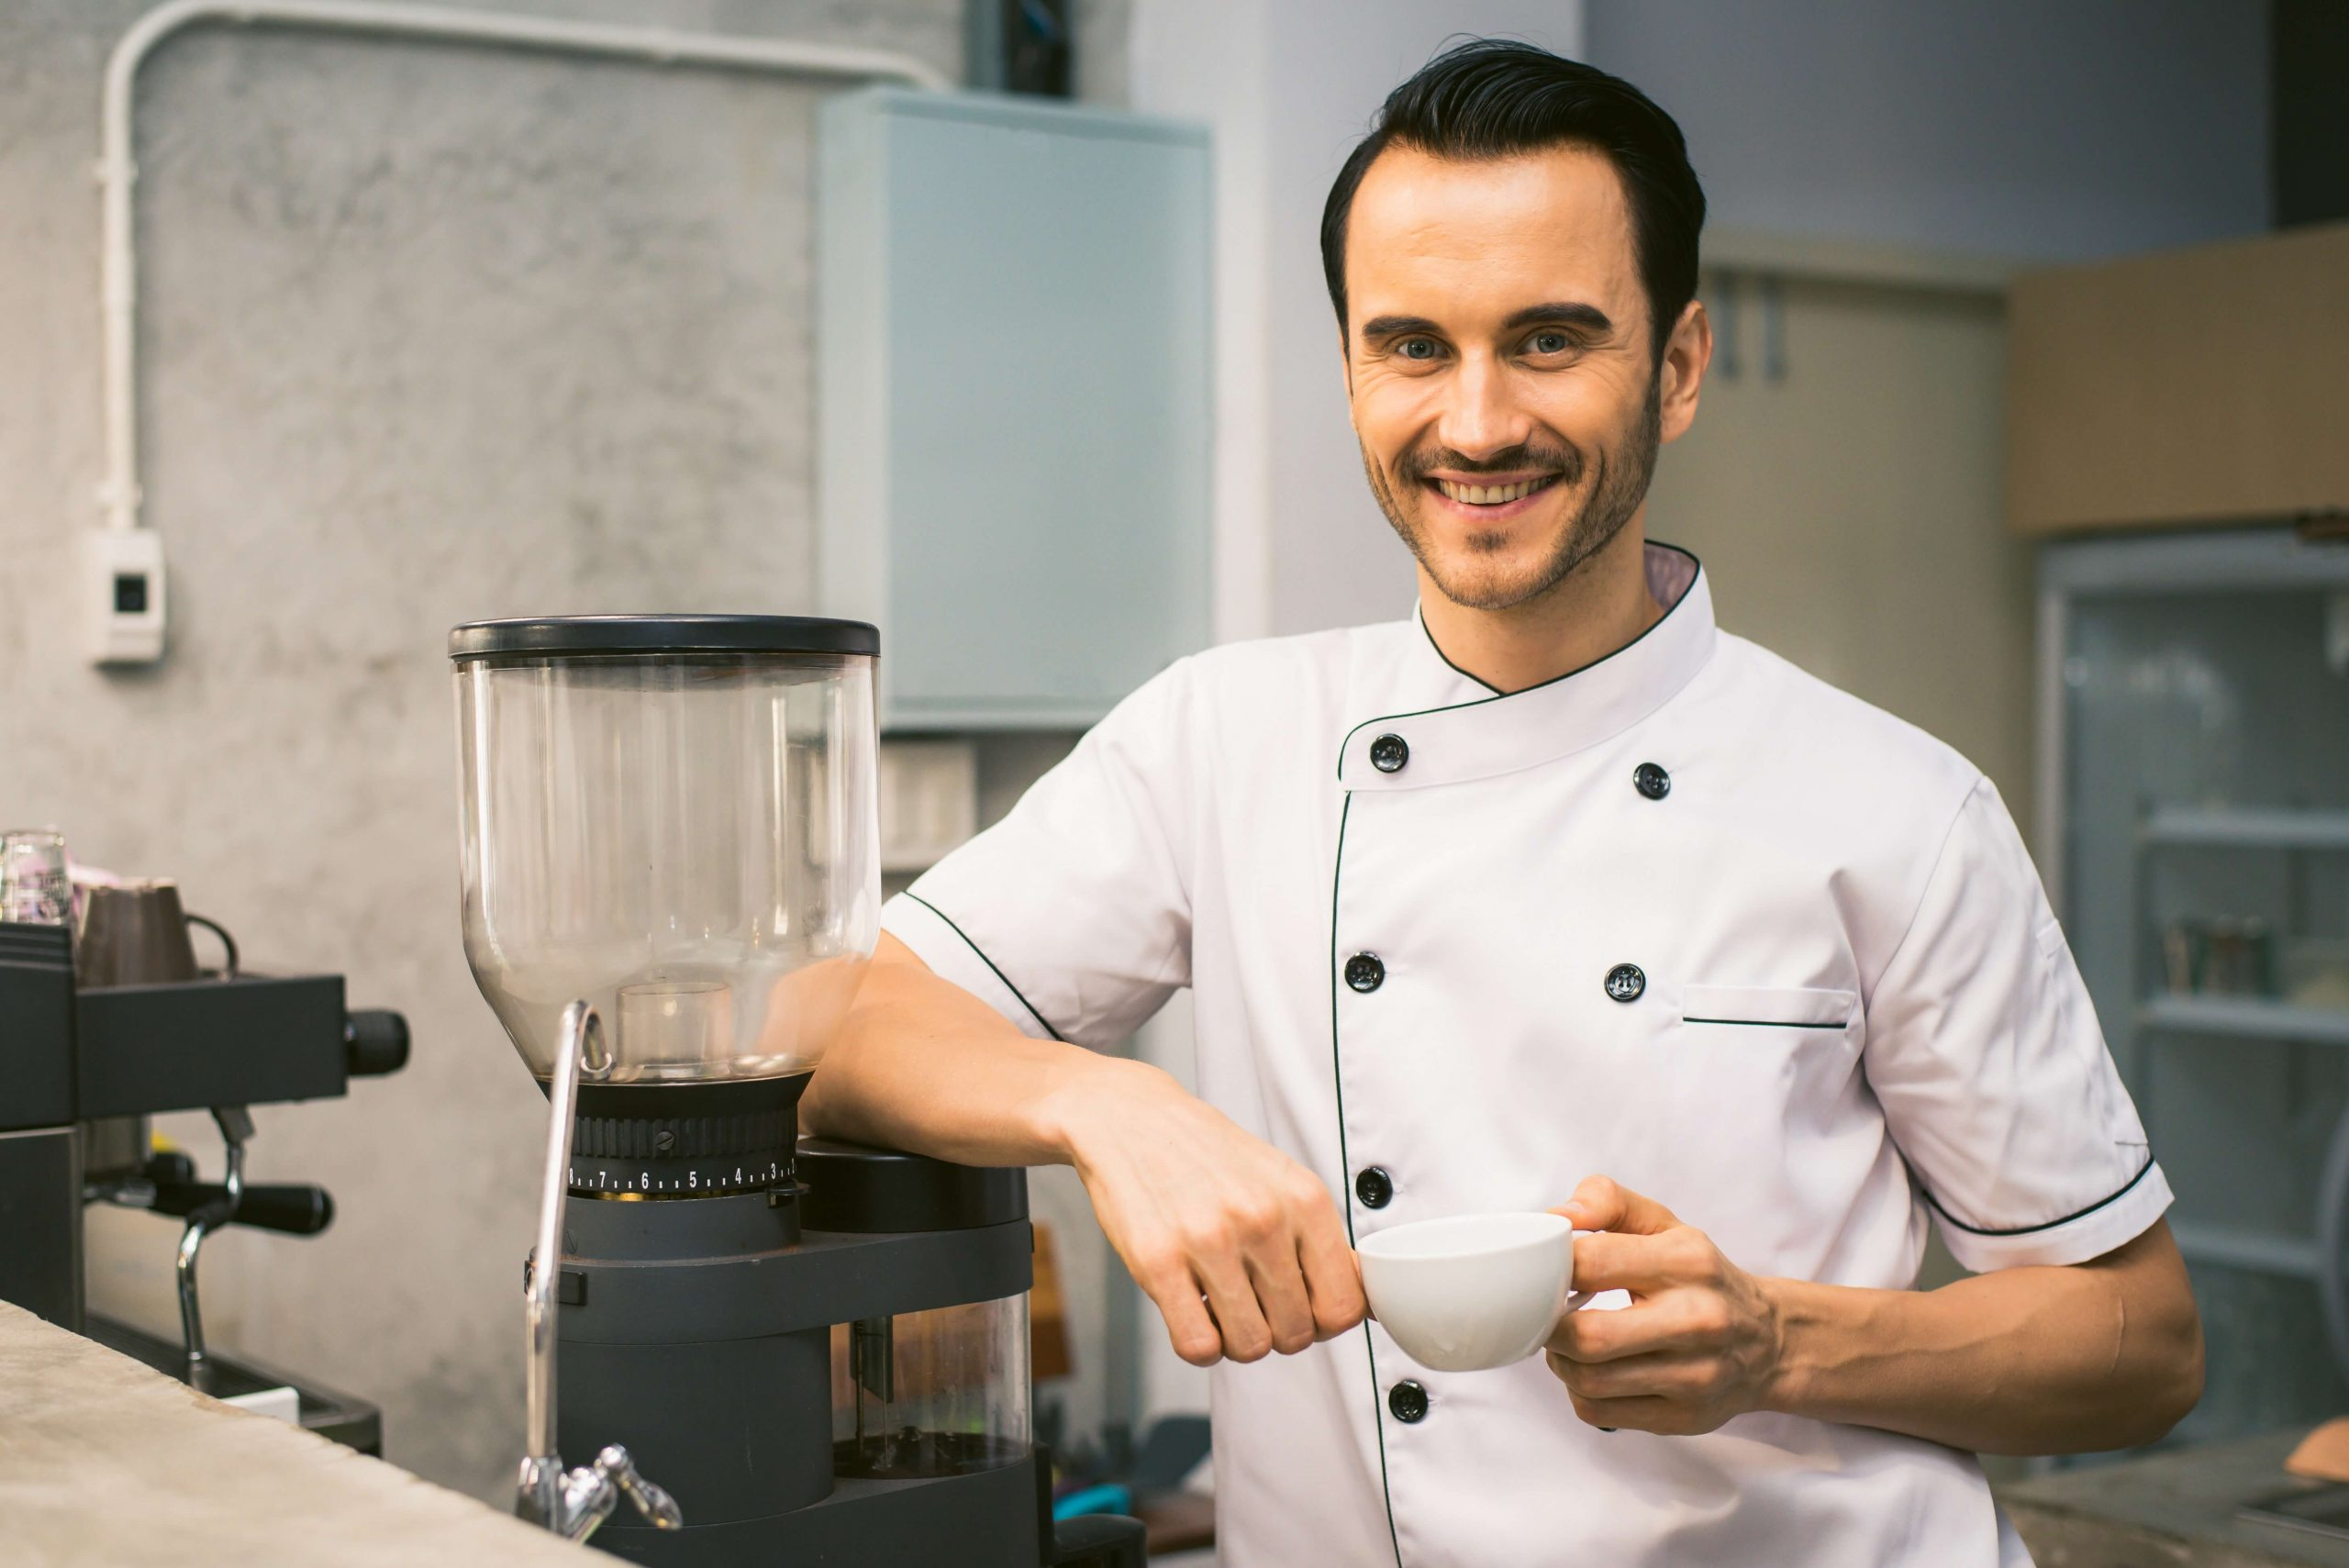 chef-coffee-cook-887827